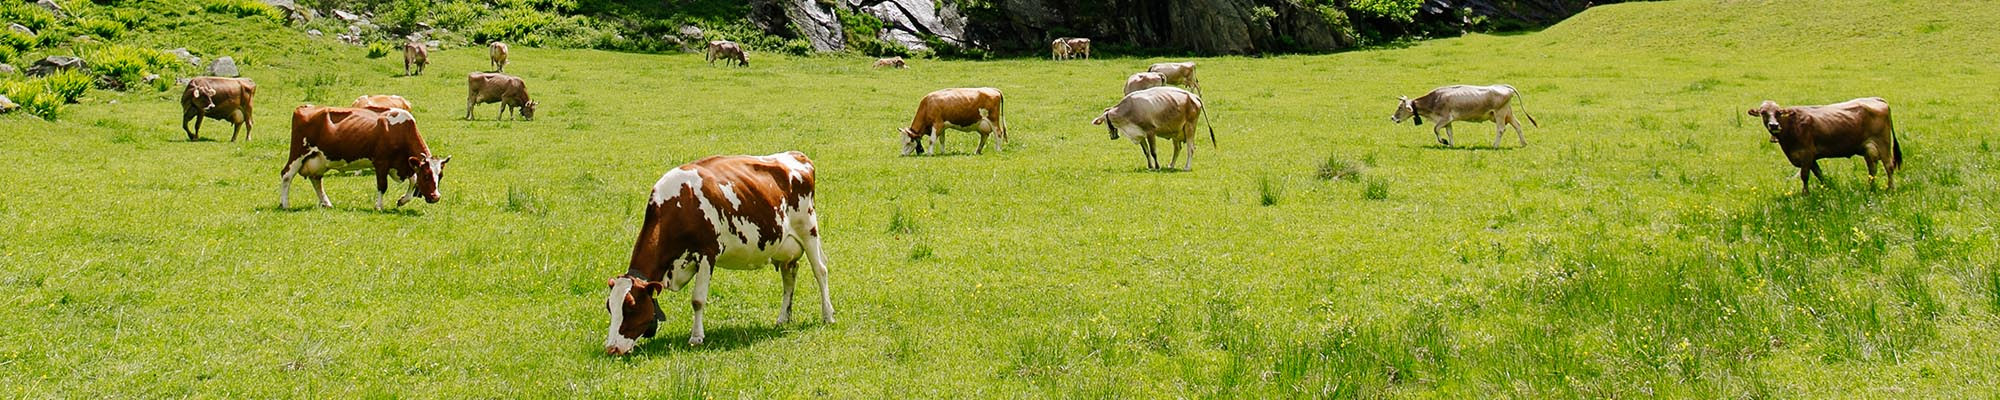 Animaux, vaches libres